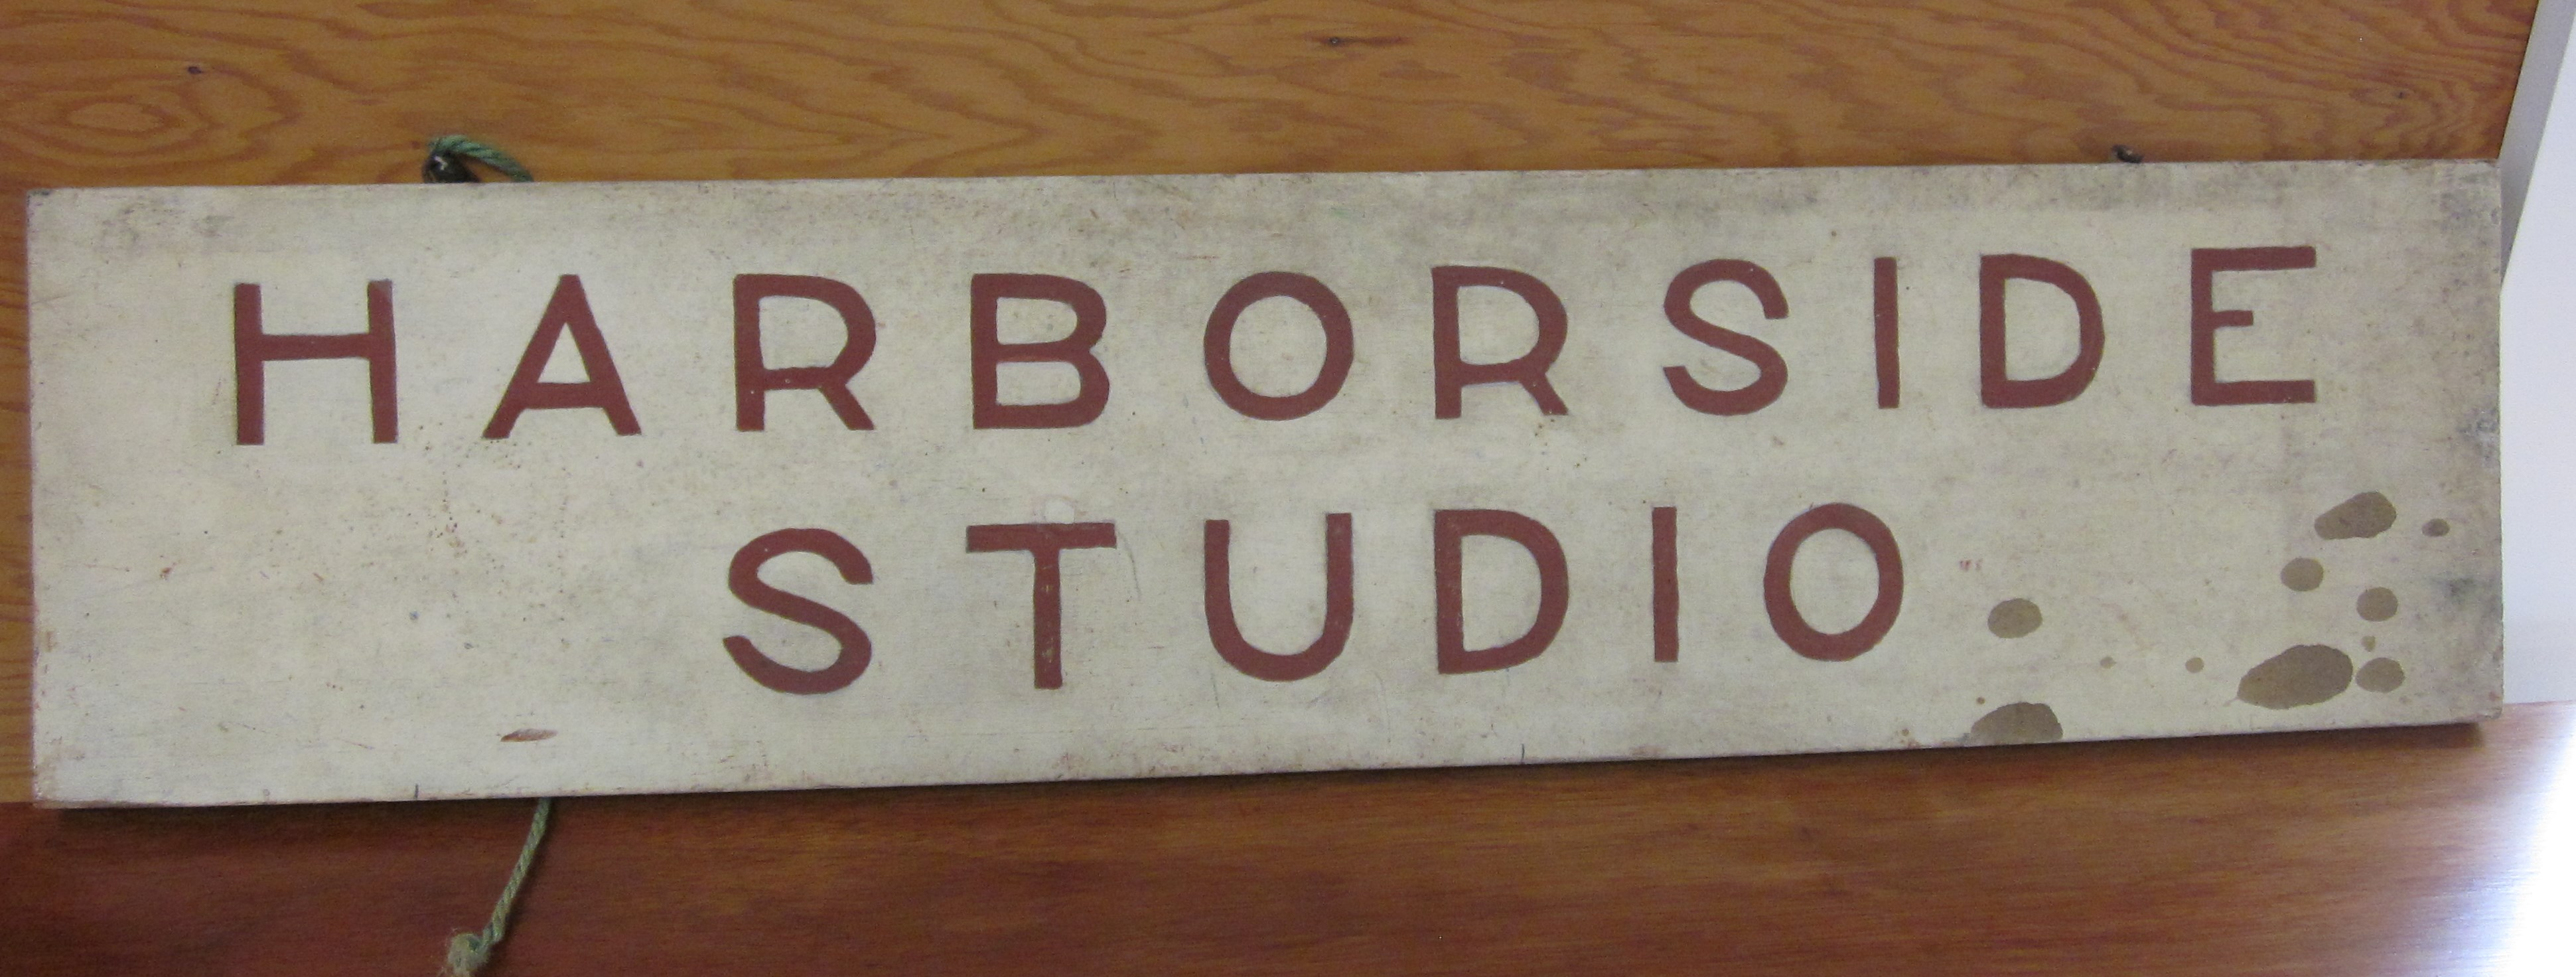 Harborside Studio Sign